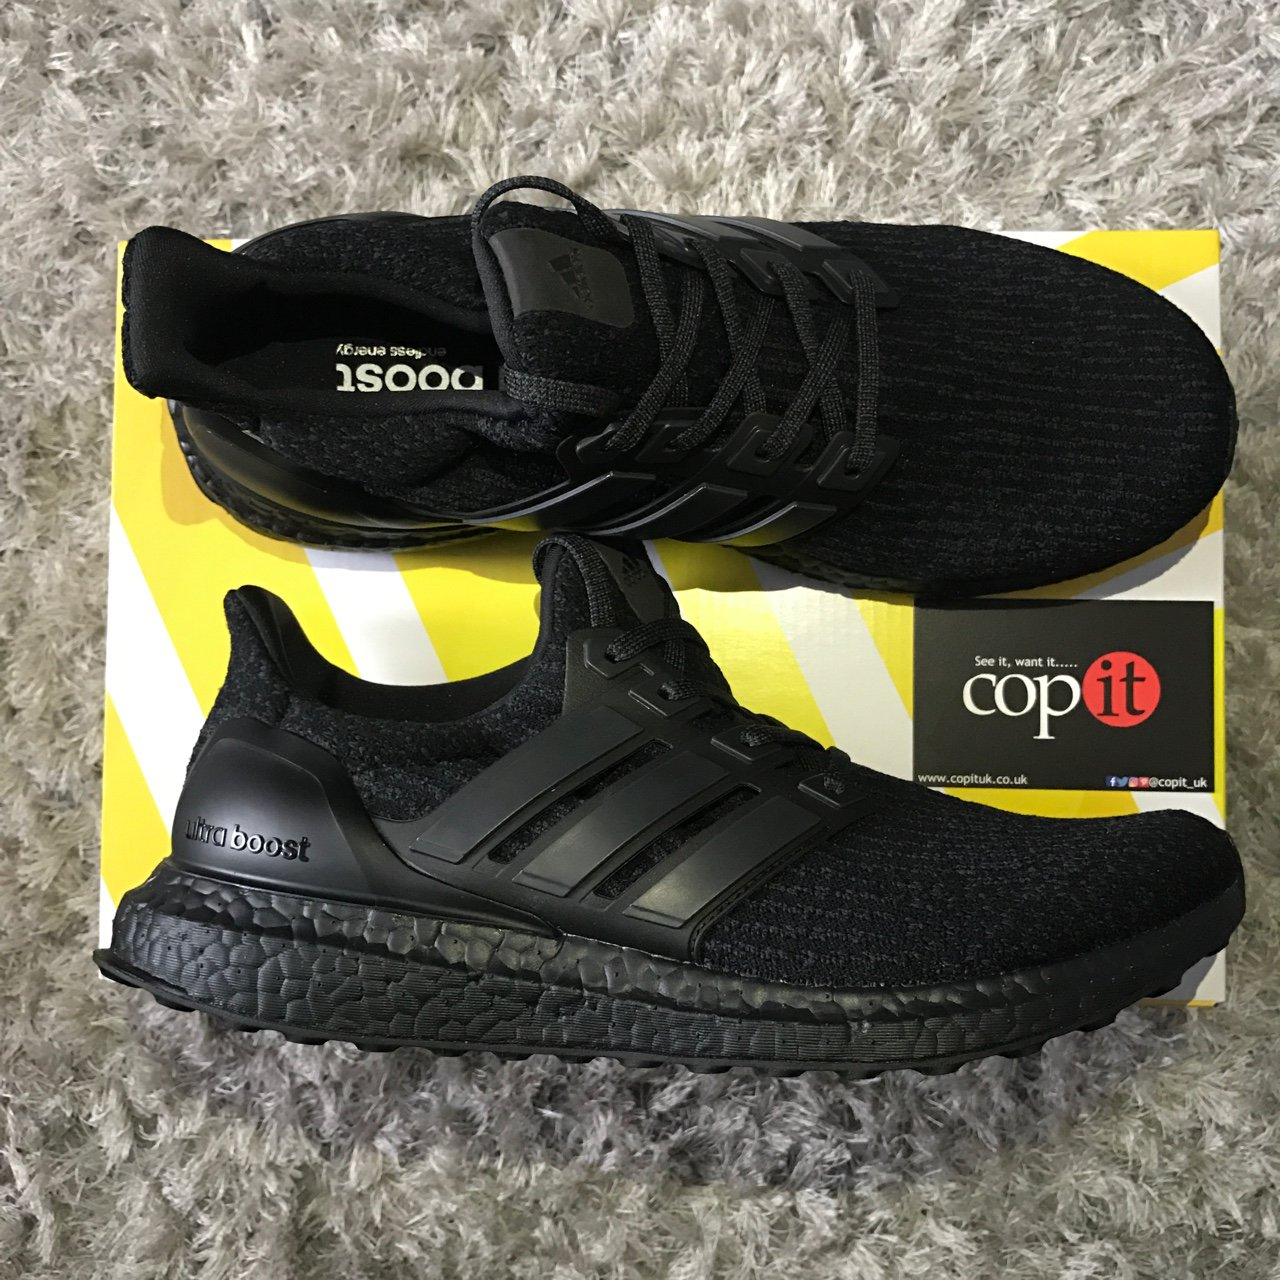 22cd7998a Adidas Ultra Boost Triple Black 3.0. Size 12 UK available. - Depop